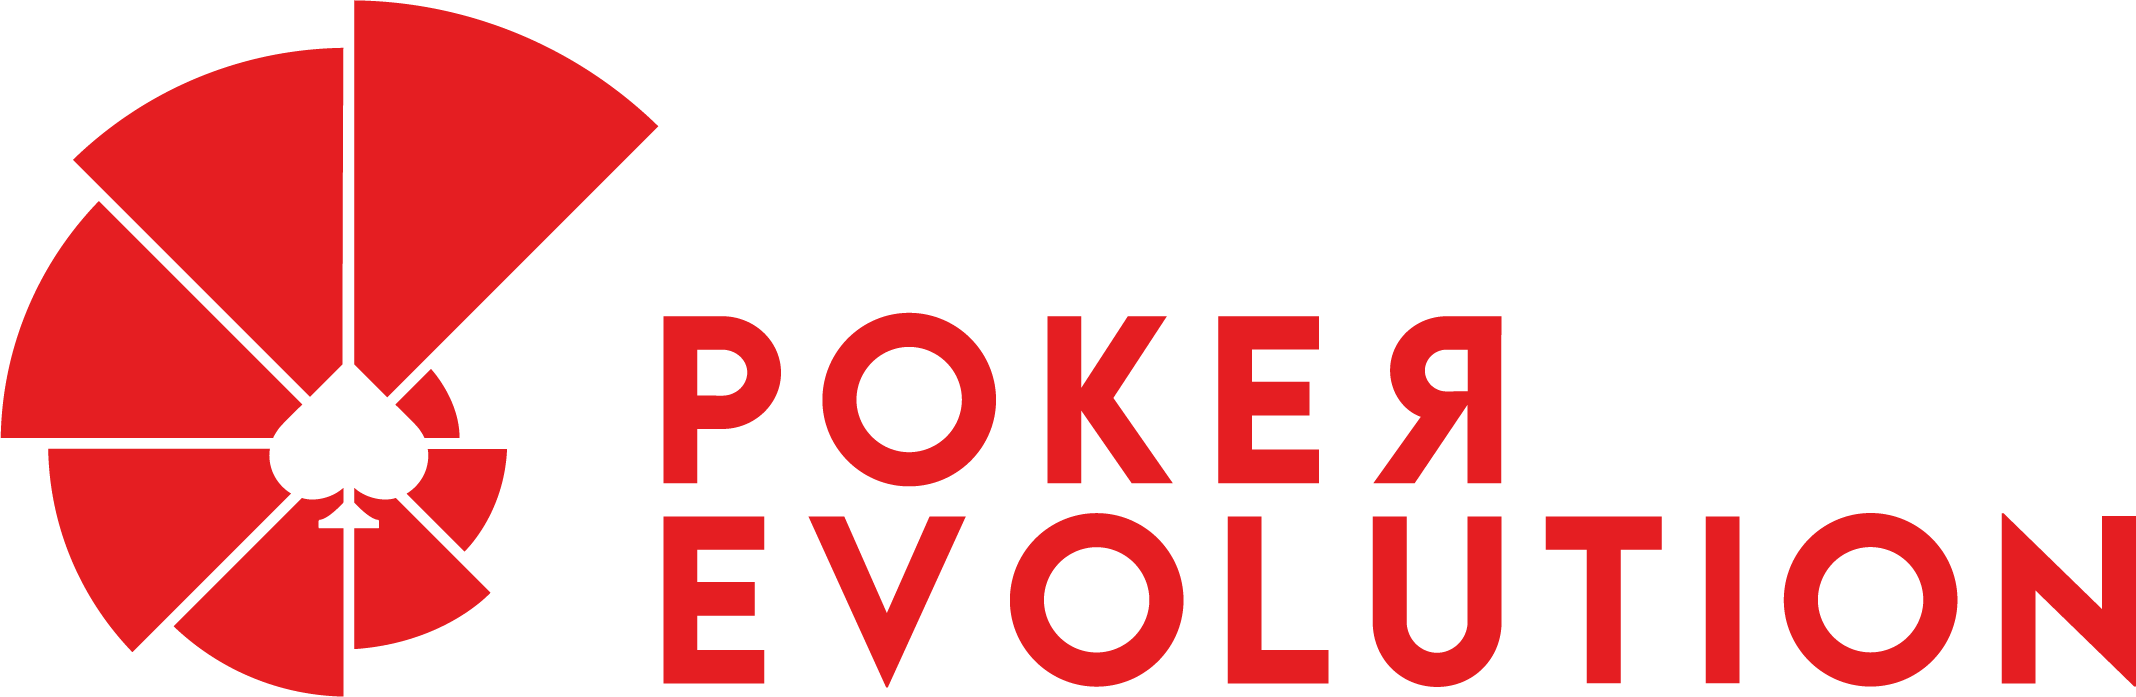 Poker Evolution